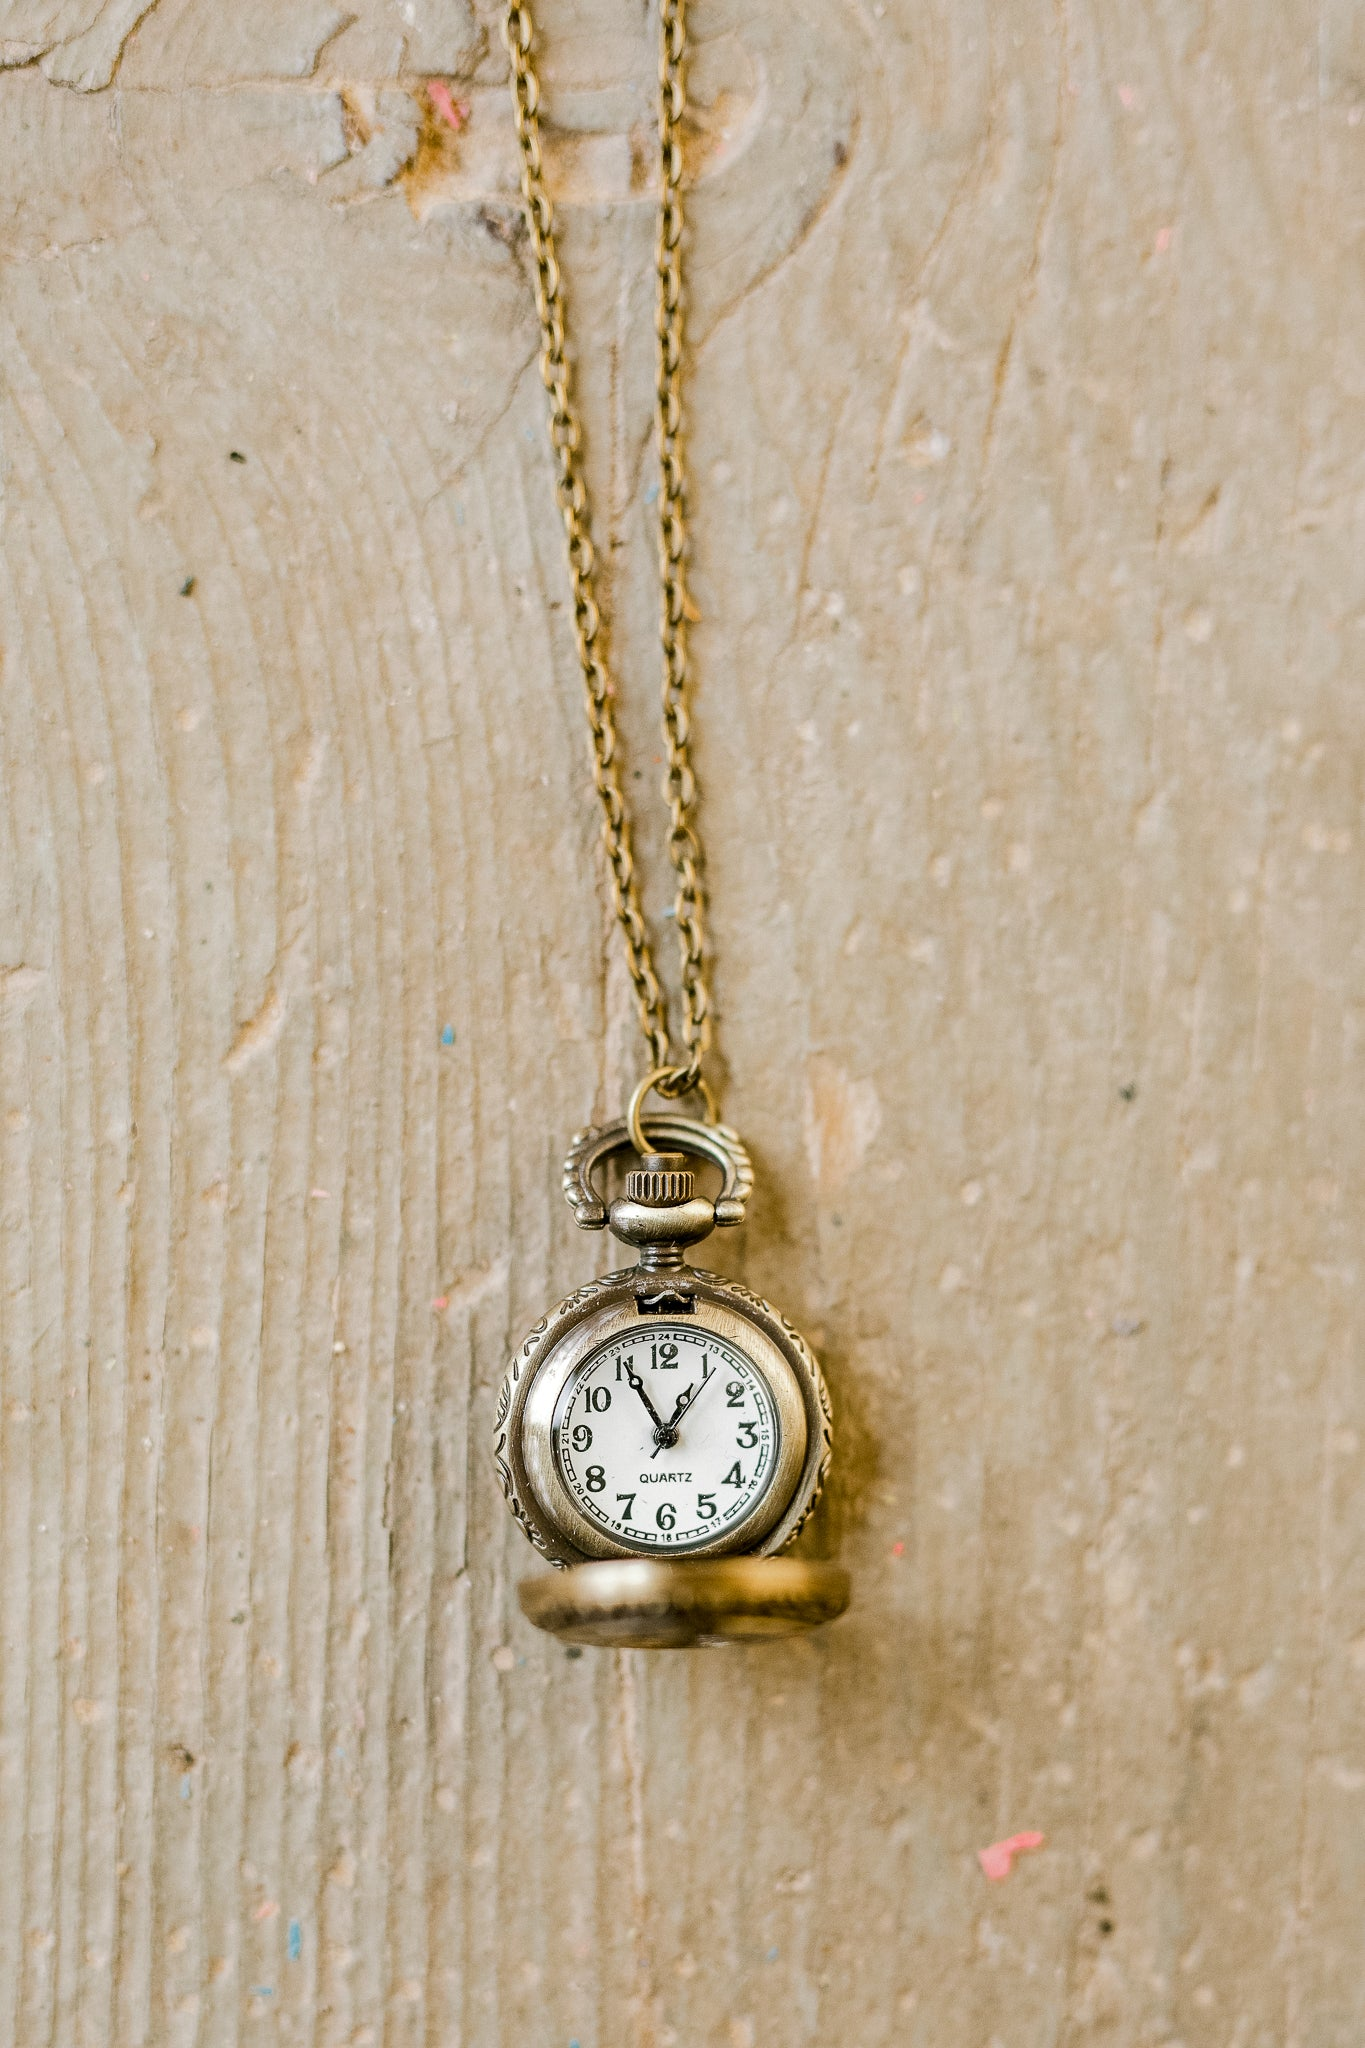 Roman Numeral Pocket Watch Necklace by Two Tree Designs